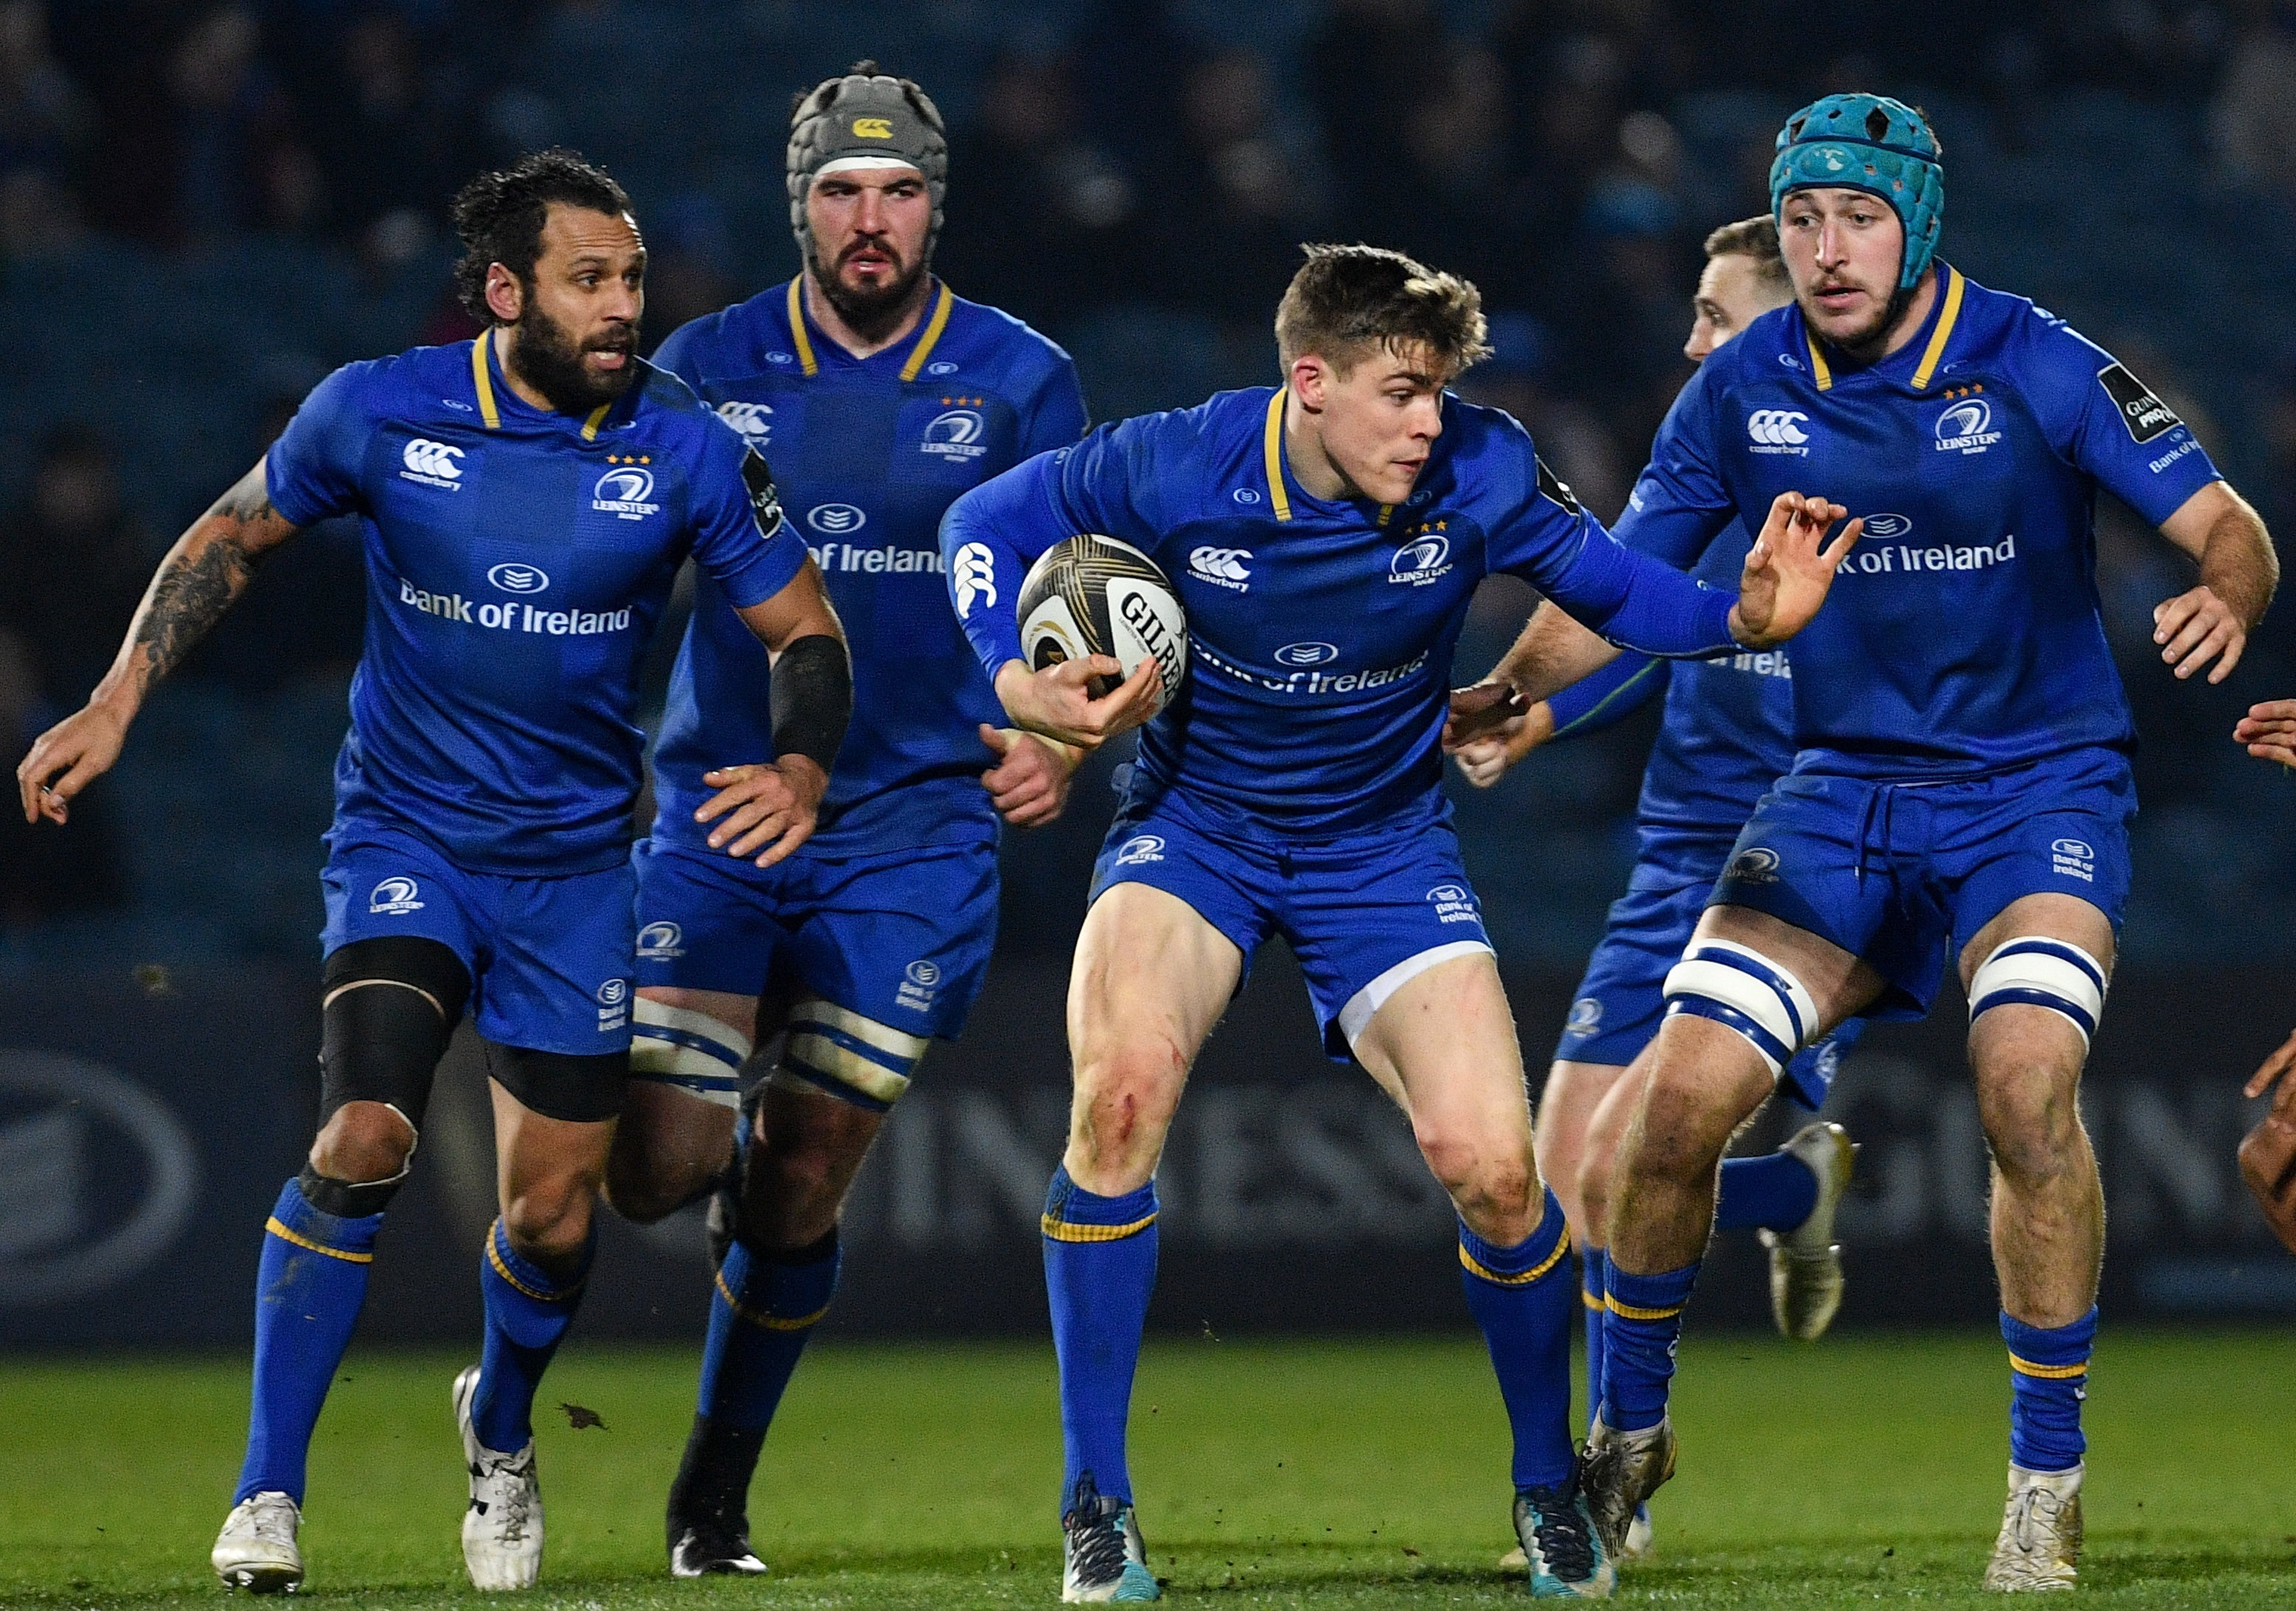 Leinster Rugby | Leinster Rugby squad injury update ahead of Scarlets